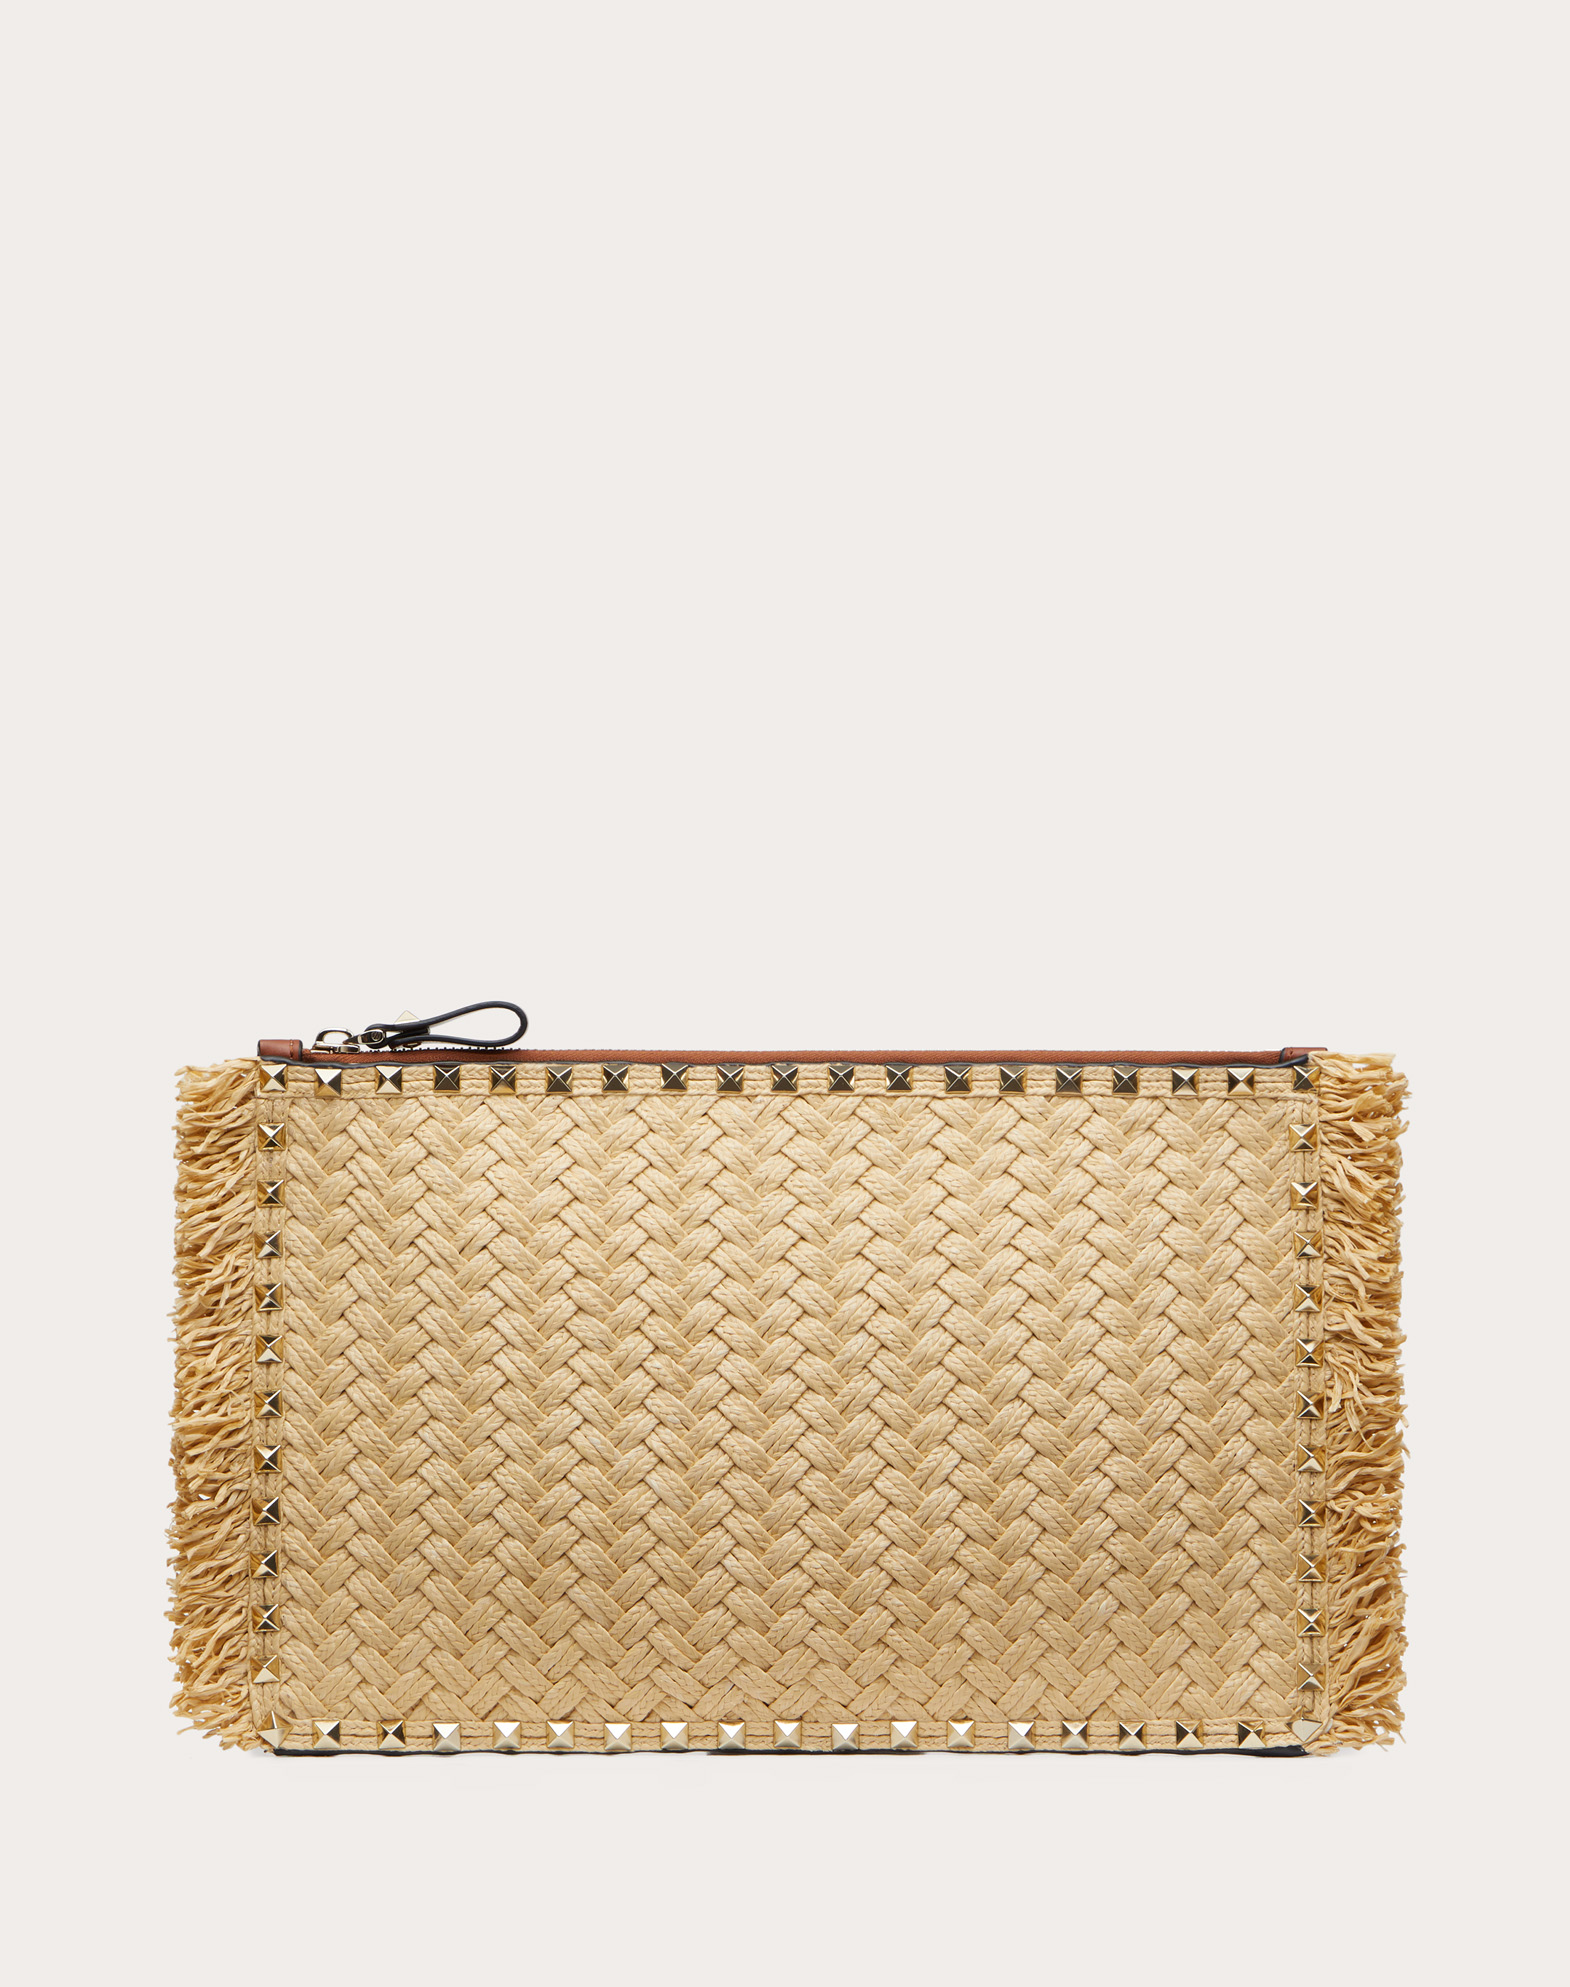 LARGE ROCKSTUD WOVEN RAFFIA AND CALFSKIN POUCH WITH ZIP